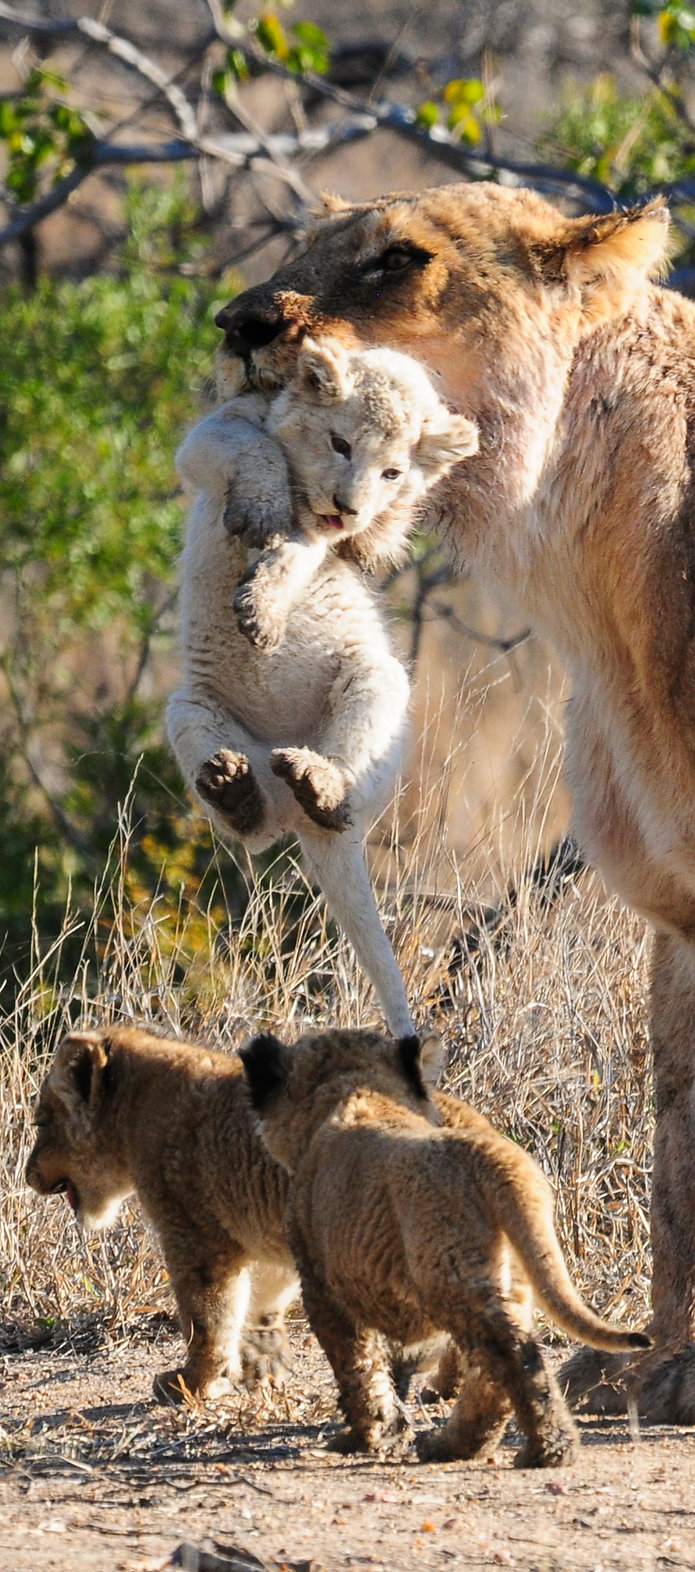 Lioness and her white lion cub, South Africa